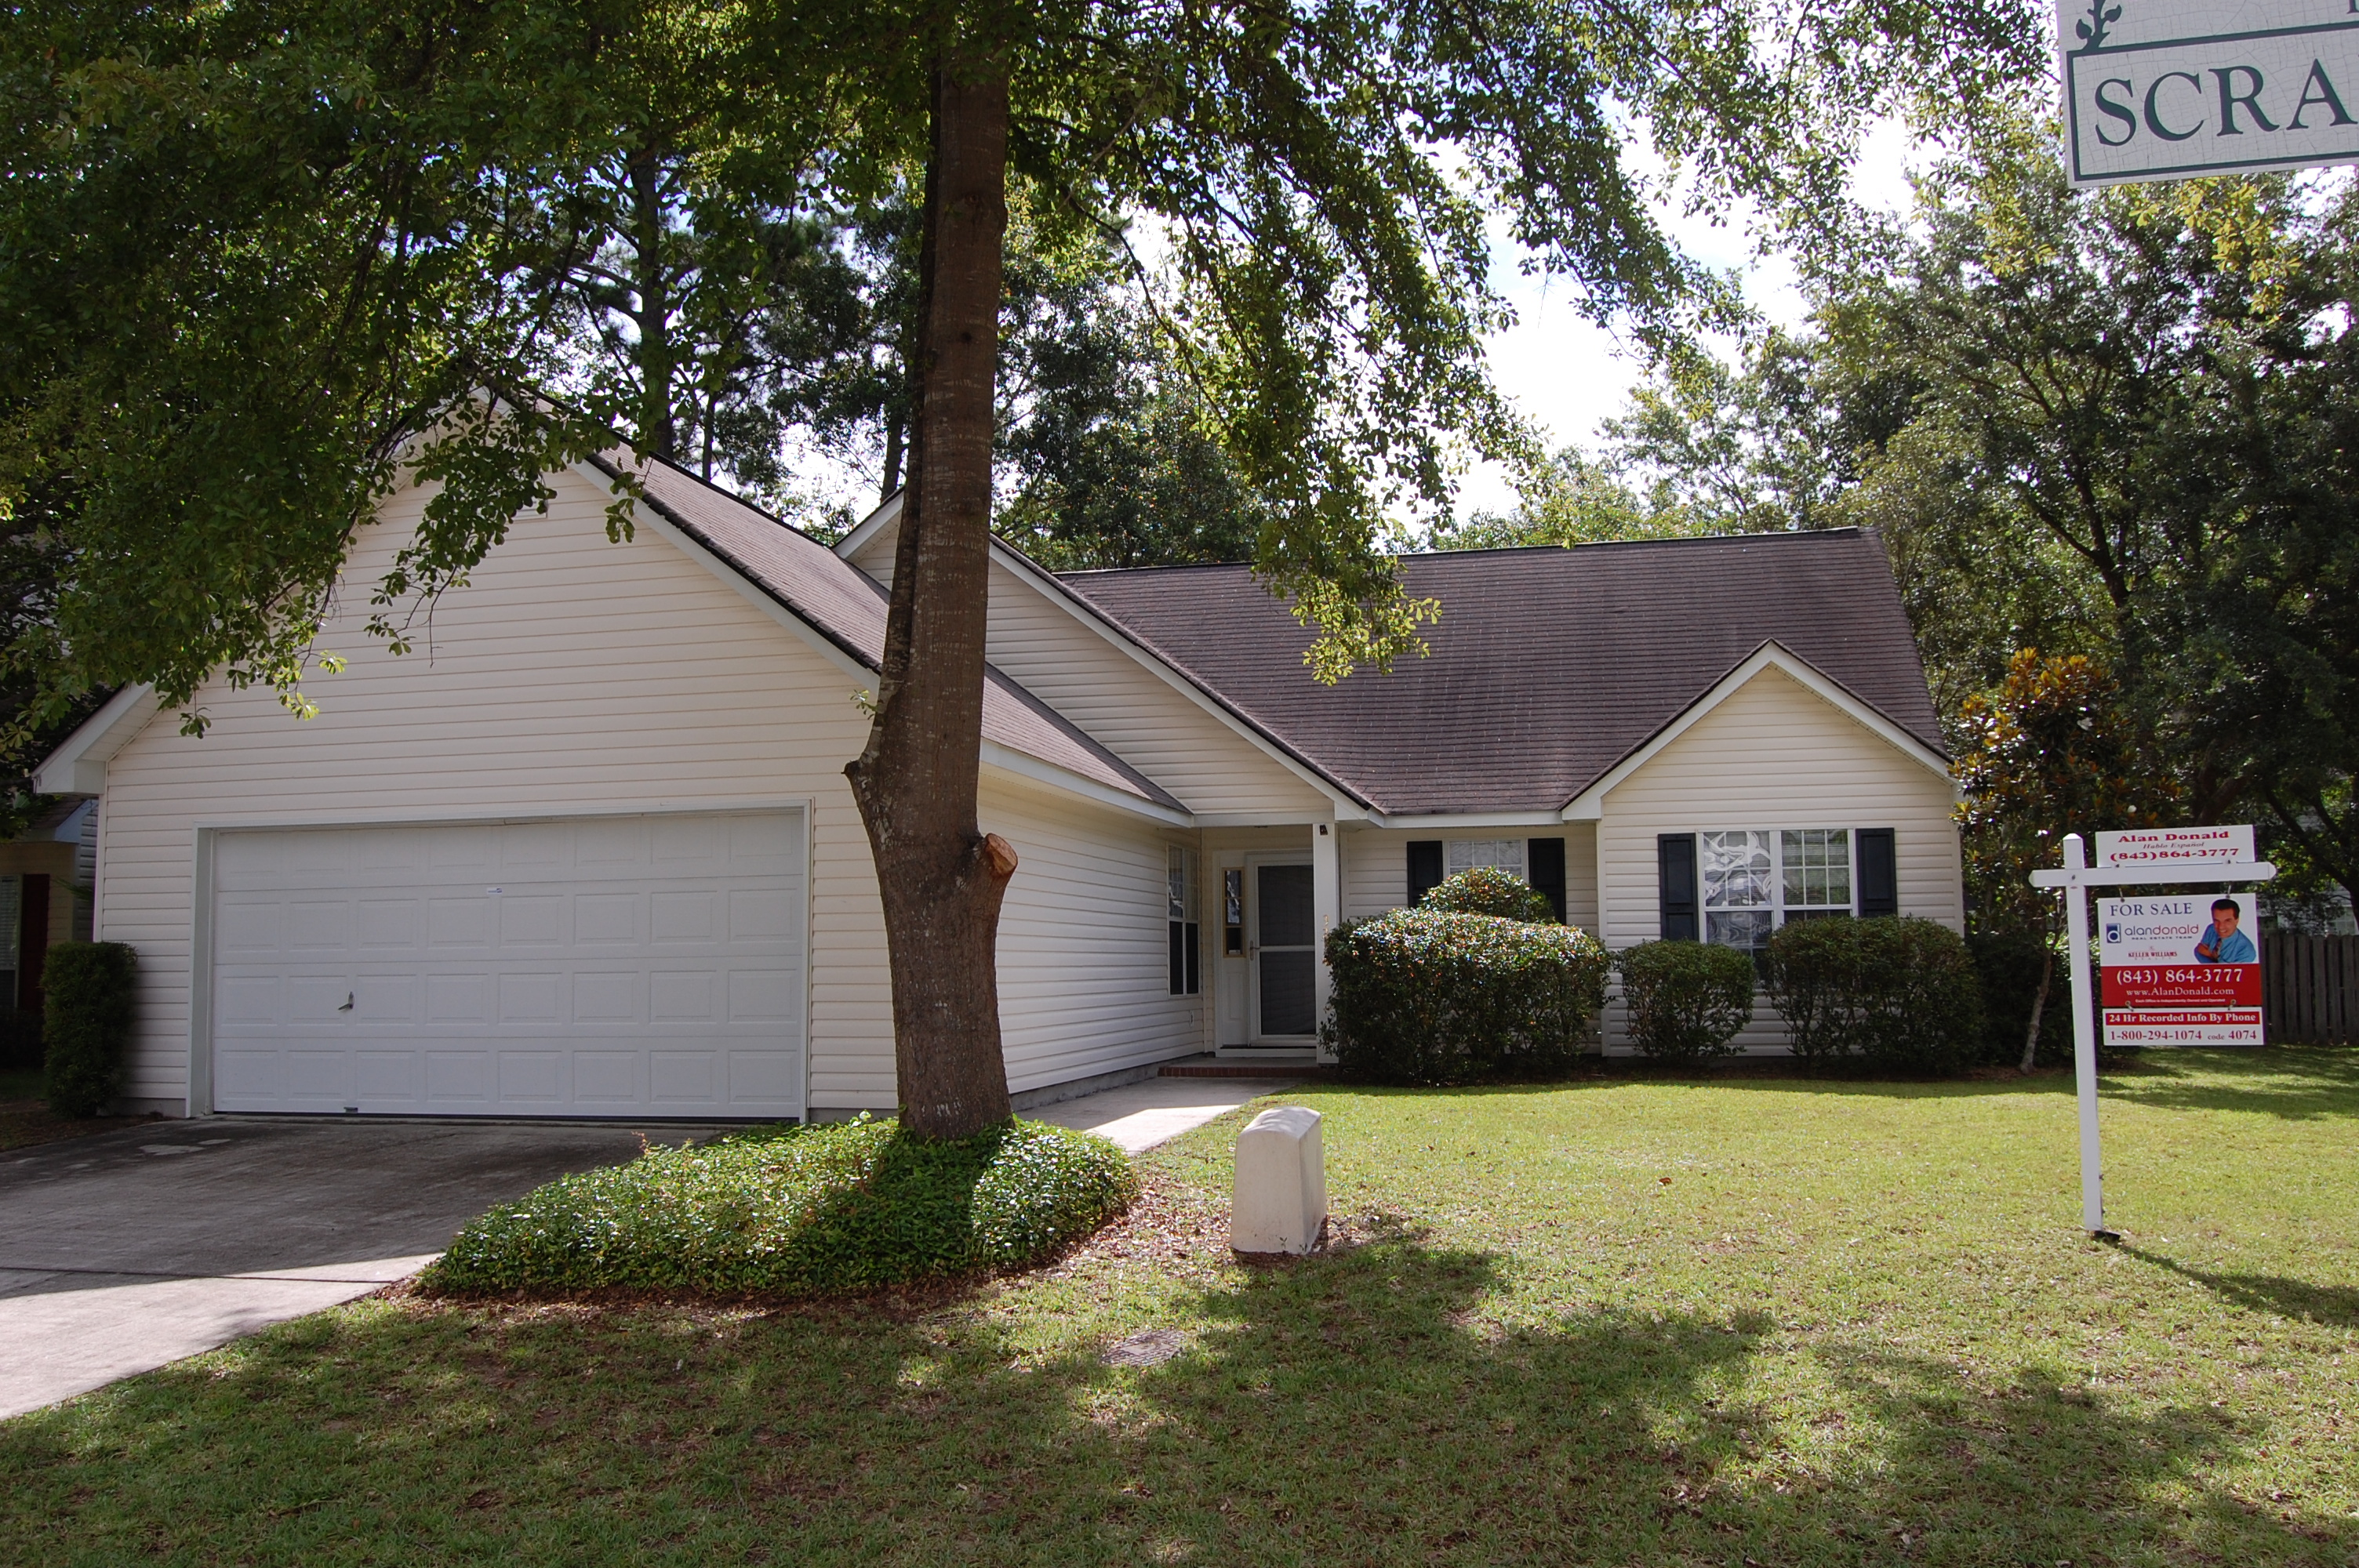 3254 Scranton Dr, Mount Plesant SC 29466, Mount Pleasant